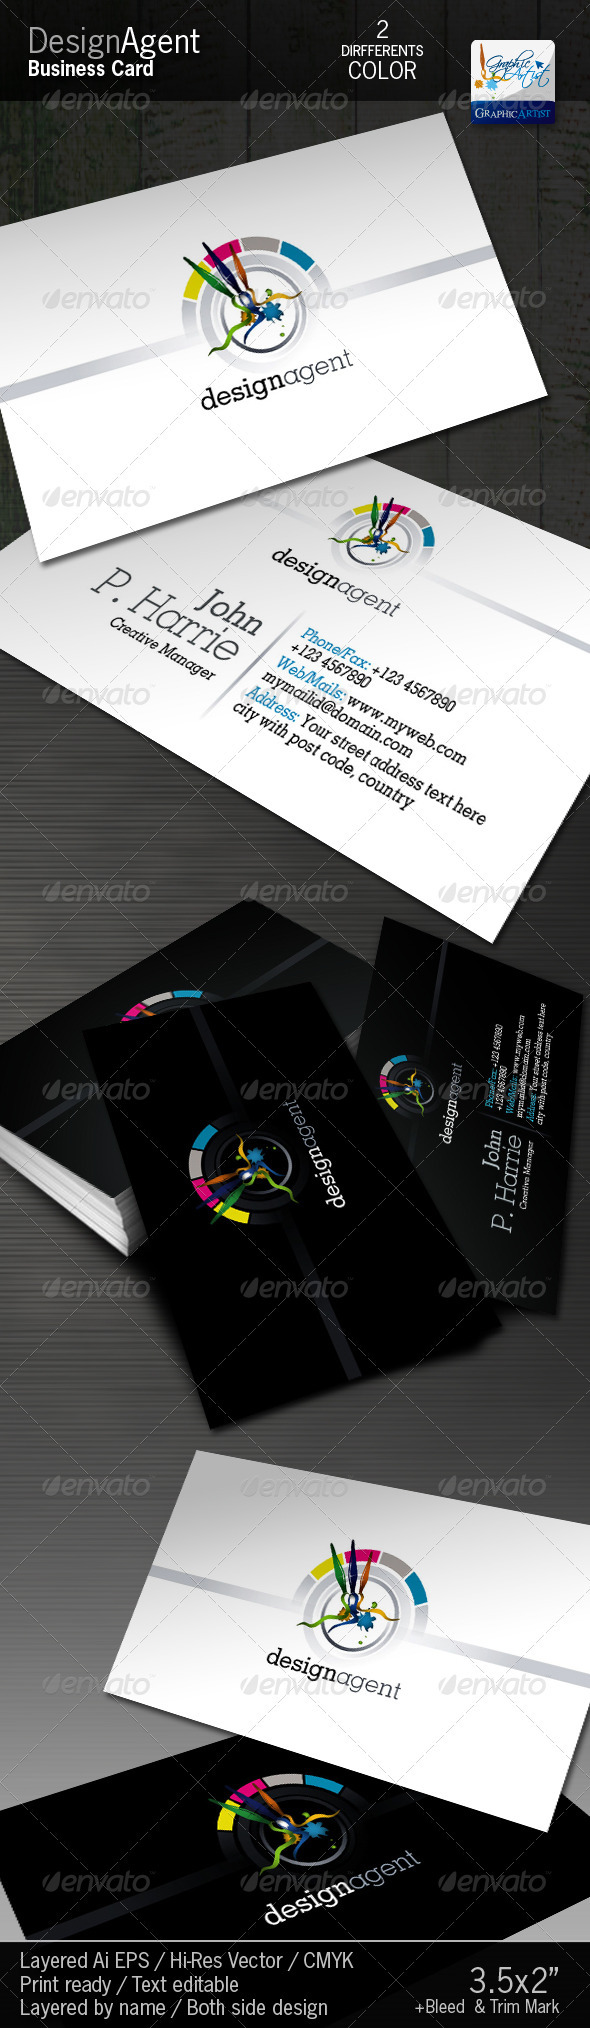 GraphicRiver DesignAgent Corporate Business Card 720505